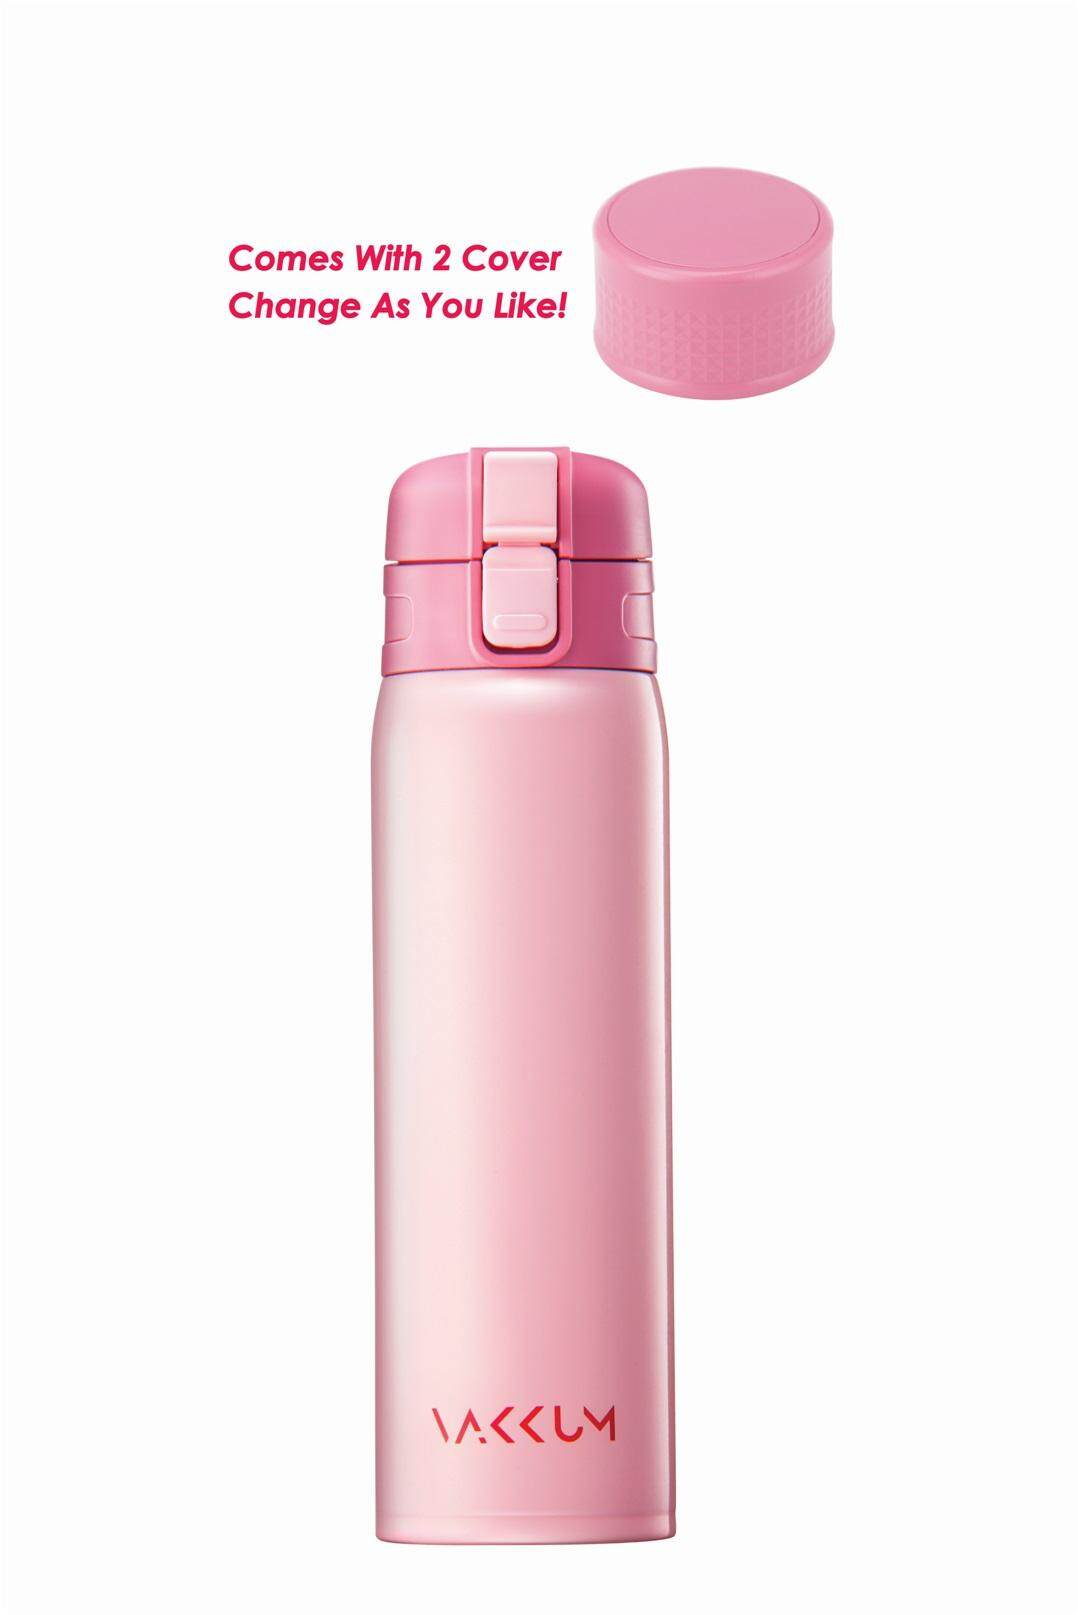 [LIVE][OASIS SWISS] ANTI-BACTERIAL VAKKUM  MADEL FLASK 500ml DOUBLE WALL S.S. PINK